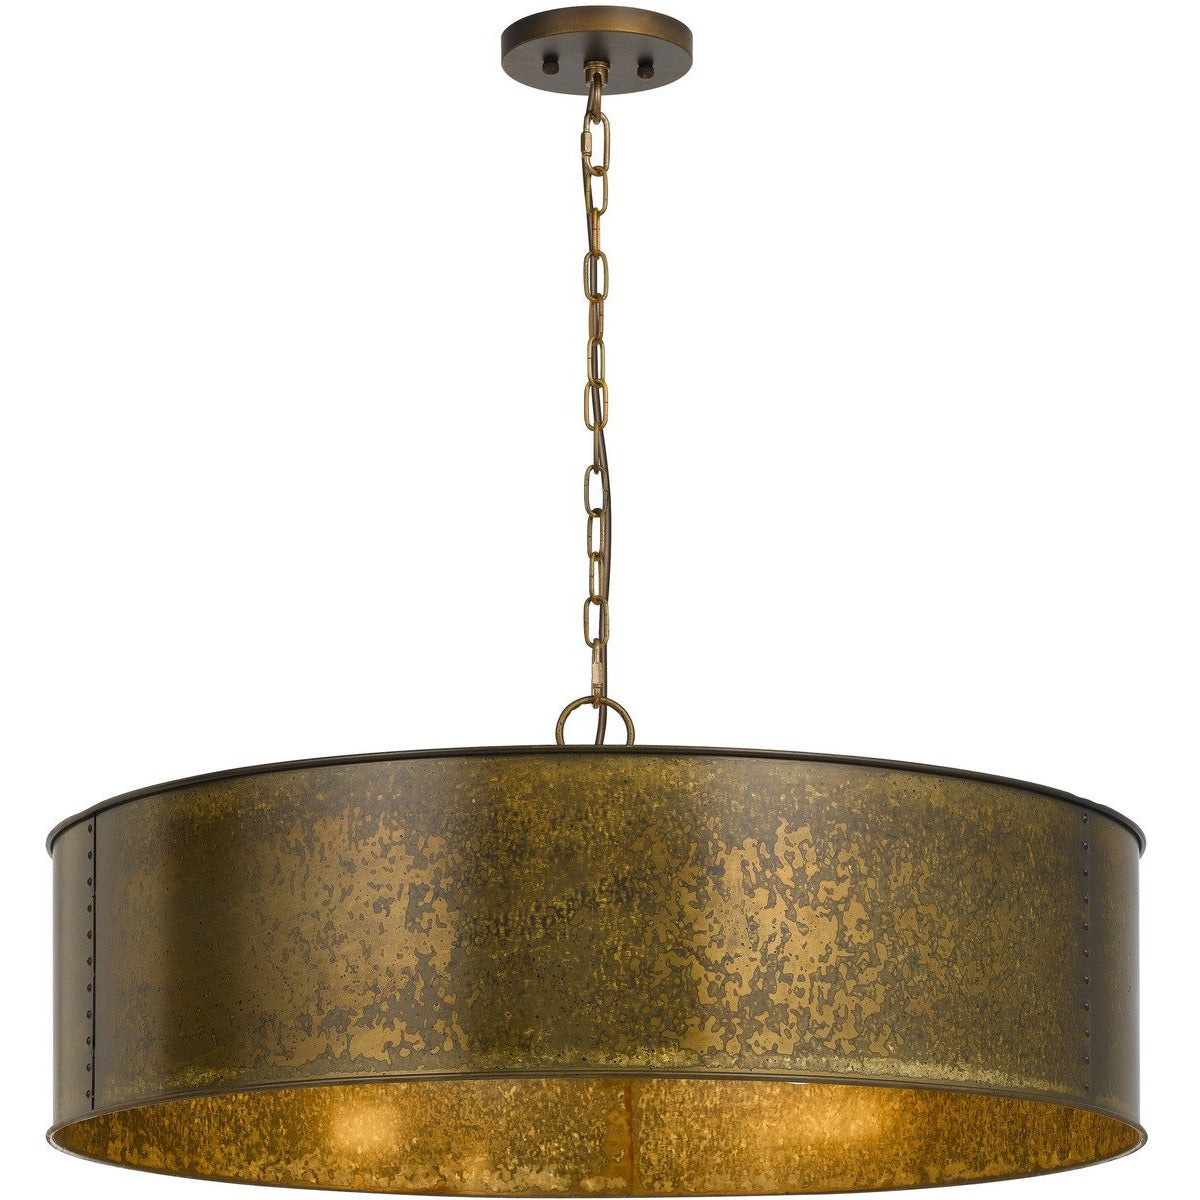 Chandeliers & Pendants - 60 X 5 Watt Round Metal Frame Chandelier With 6 Foot Chain, Distressed Gold